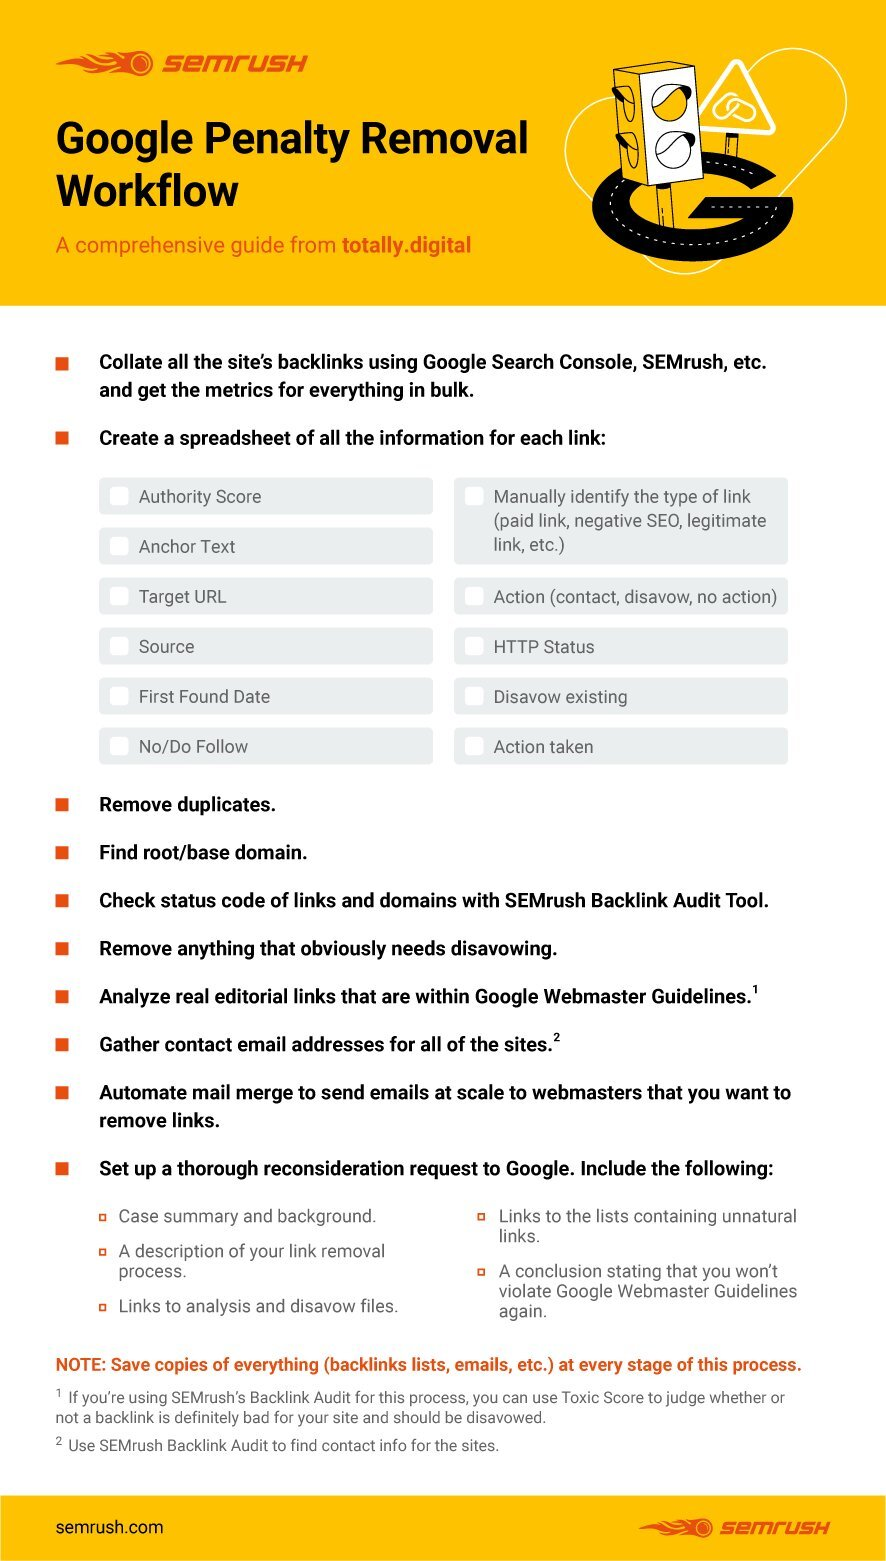 SEMrush Google Penalty Workflow Infographic